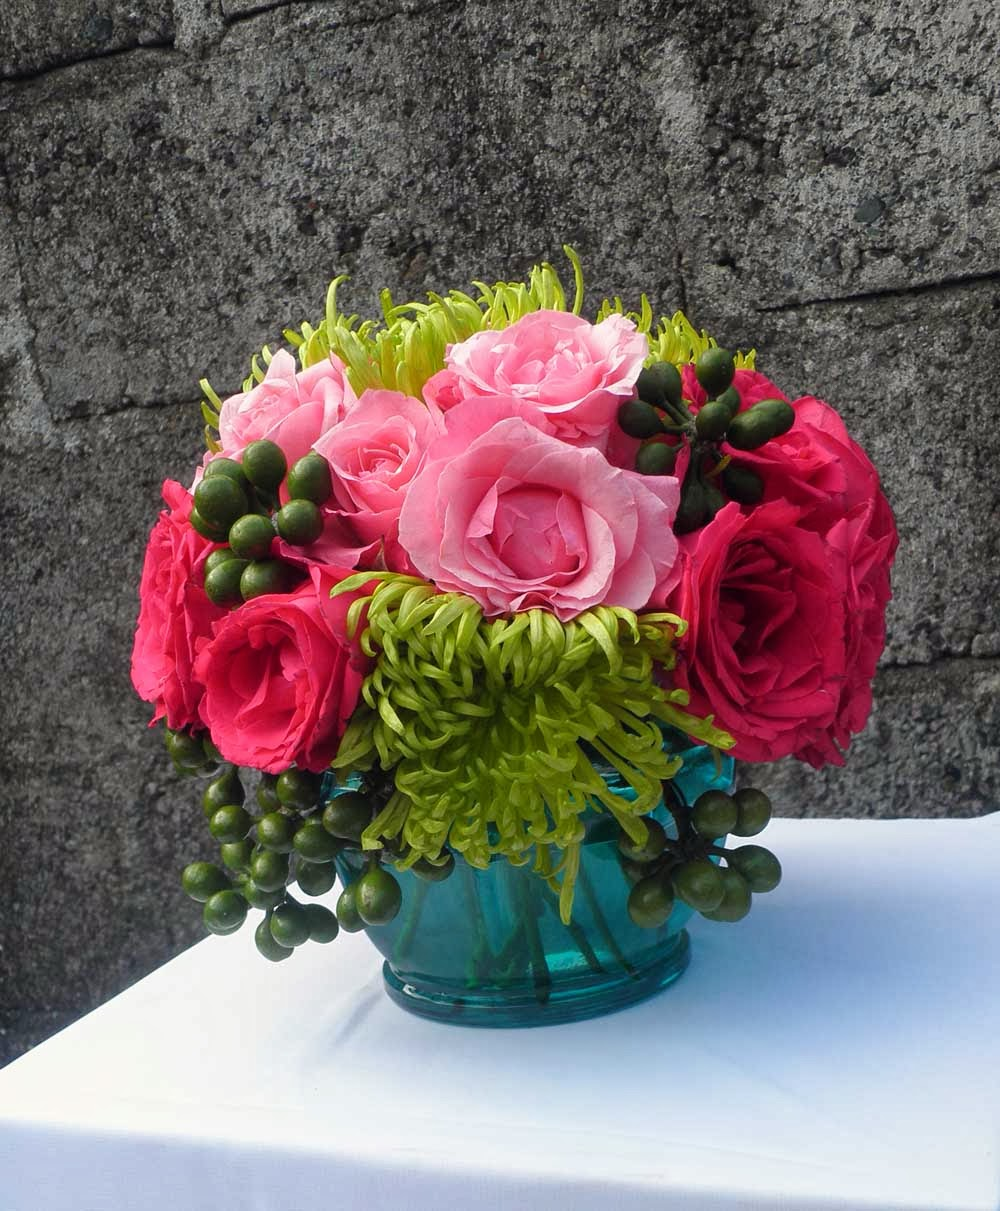 turquoise vase-hot pink rose, pink rose and green spider mums